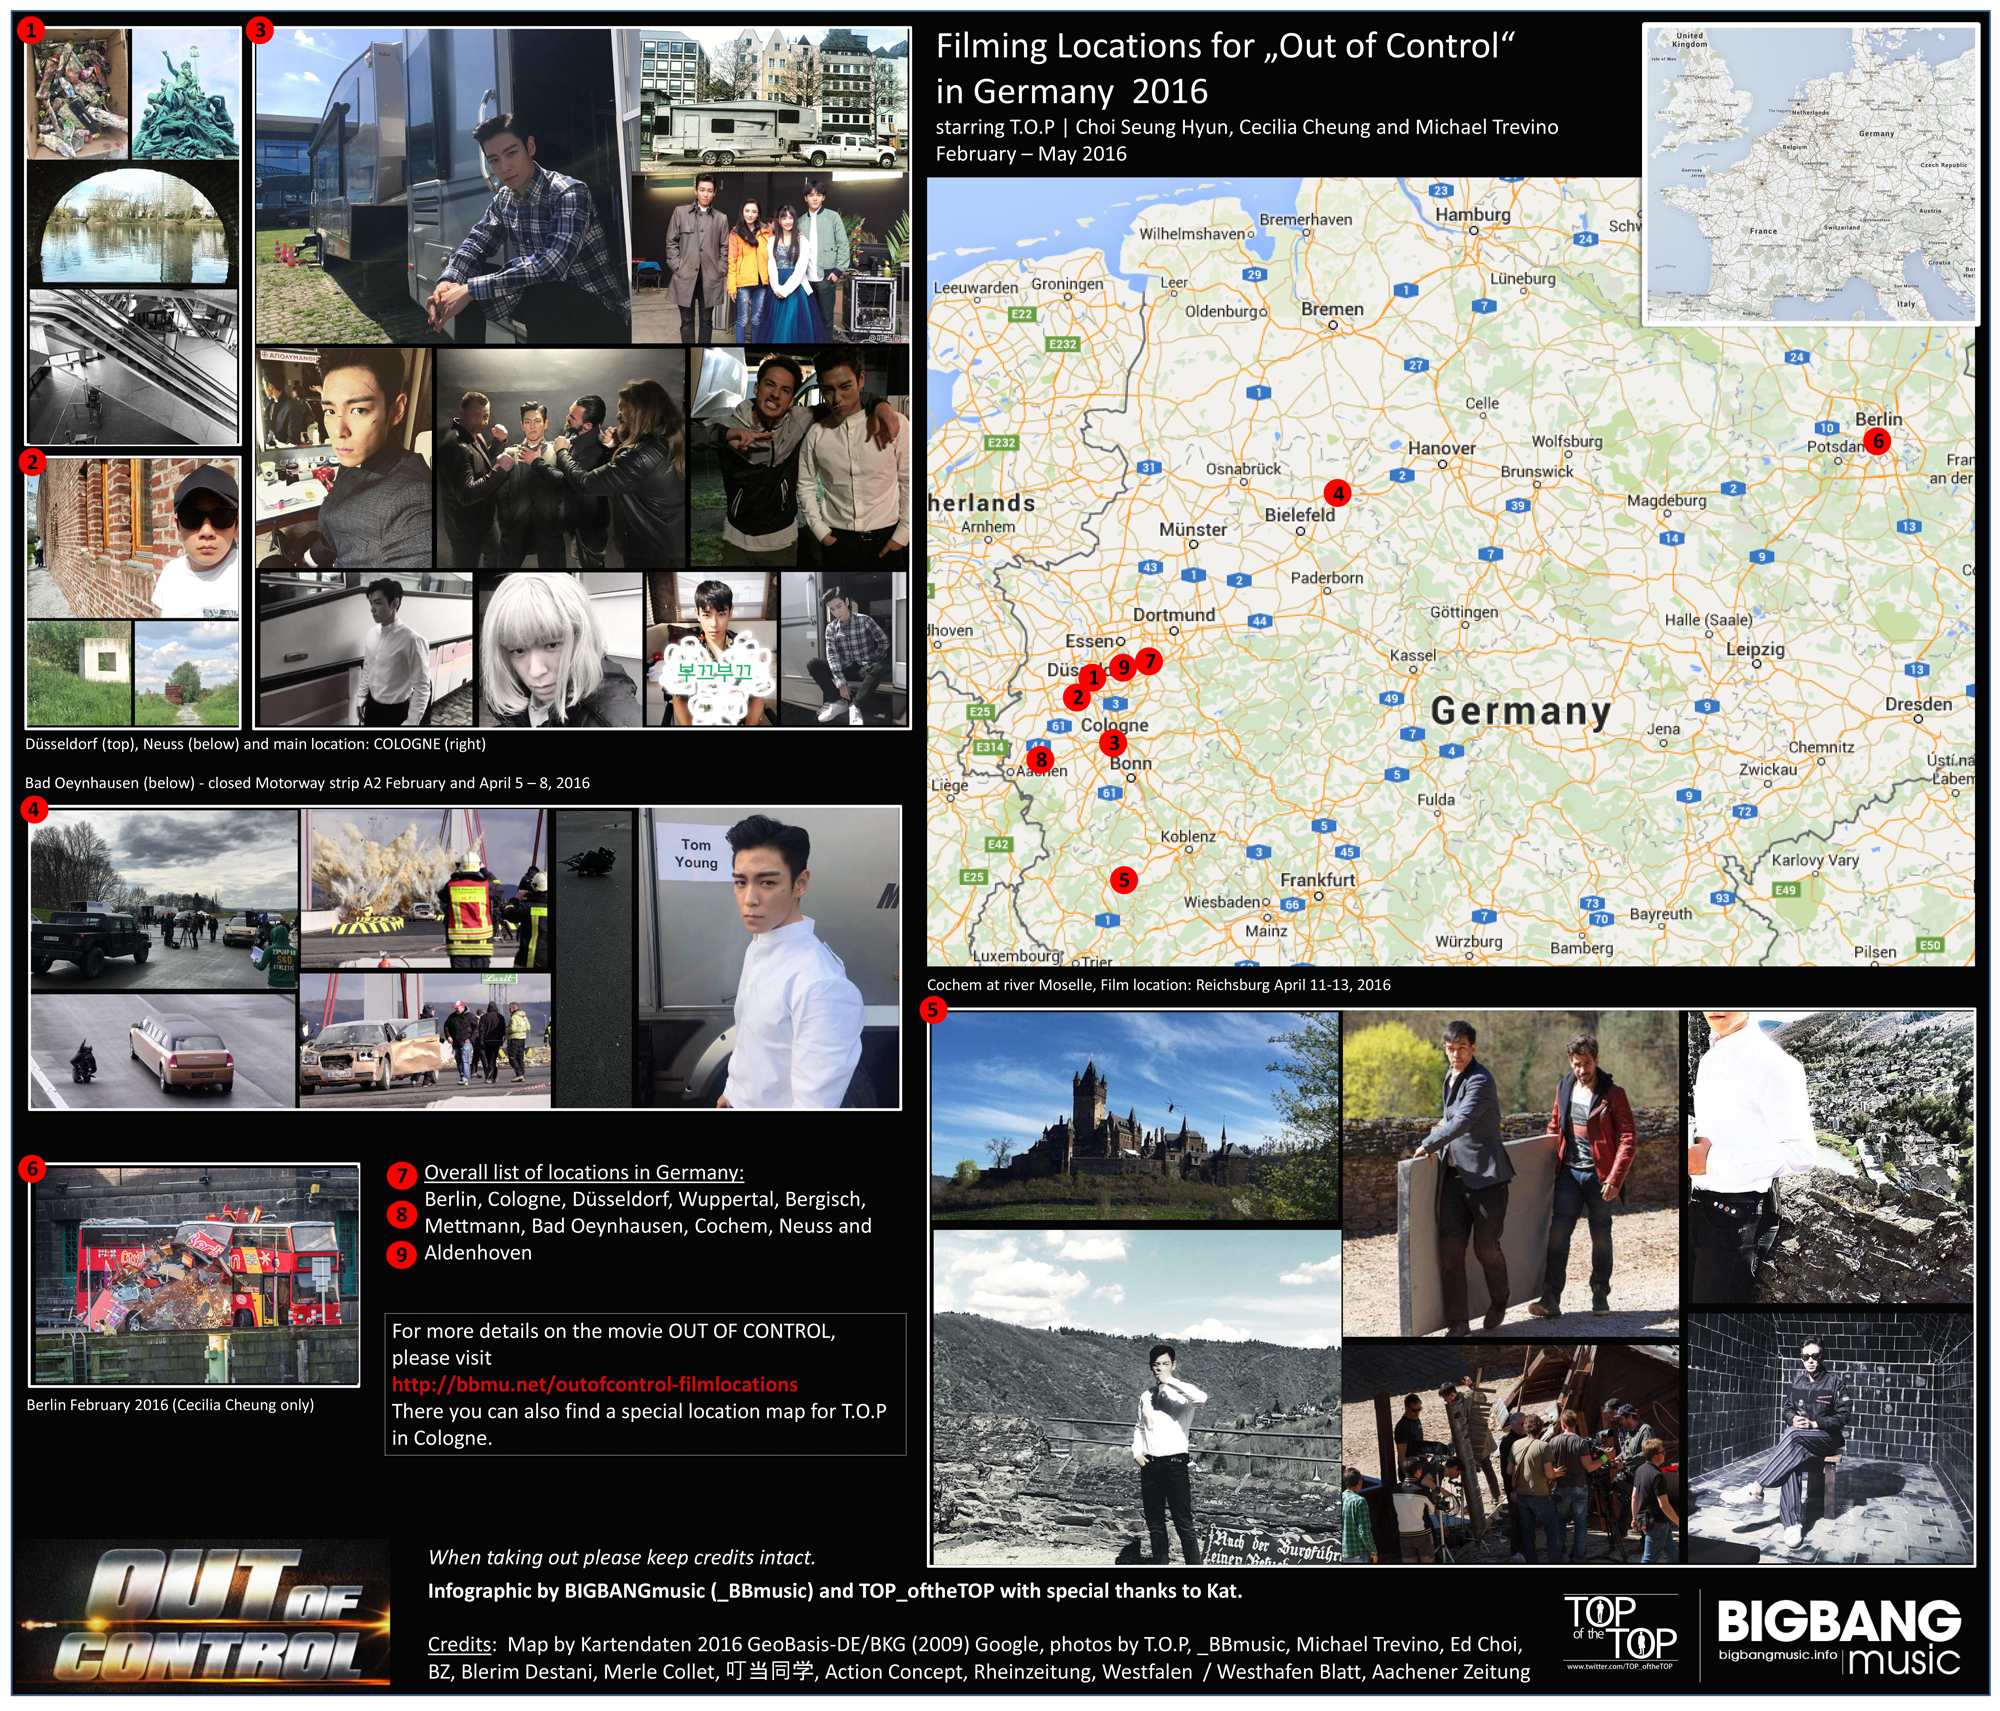 Out of Control Movie Locations in Germany 2016 starring T.O.P Choi Seung Hyun